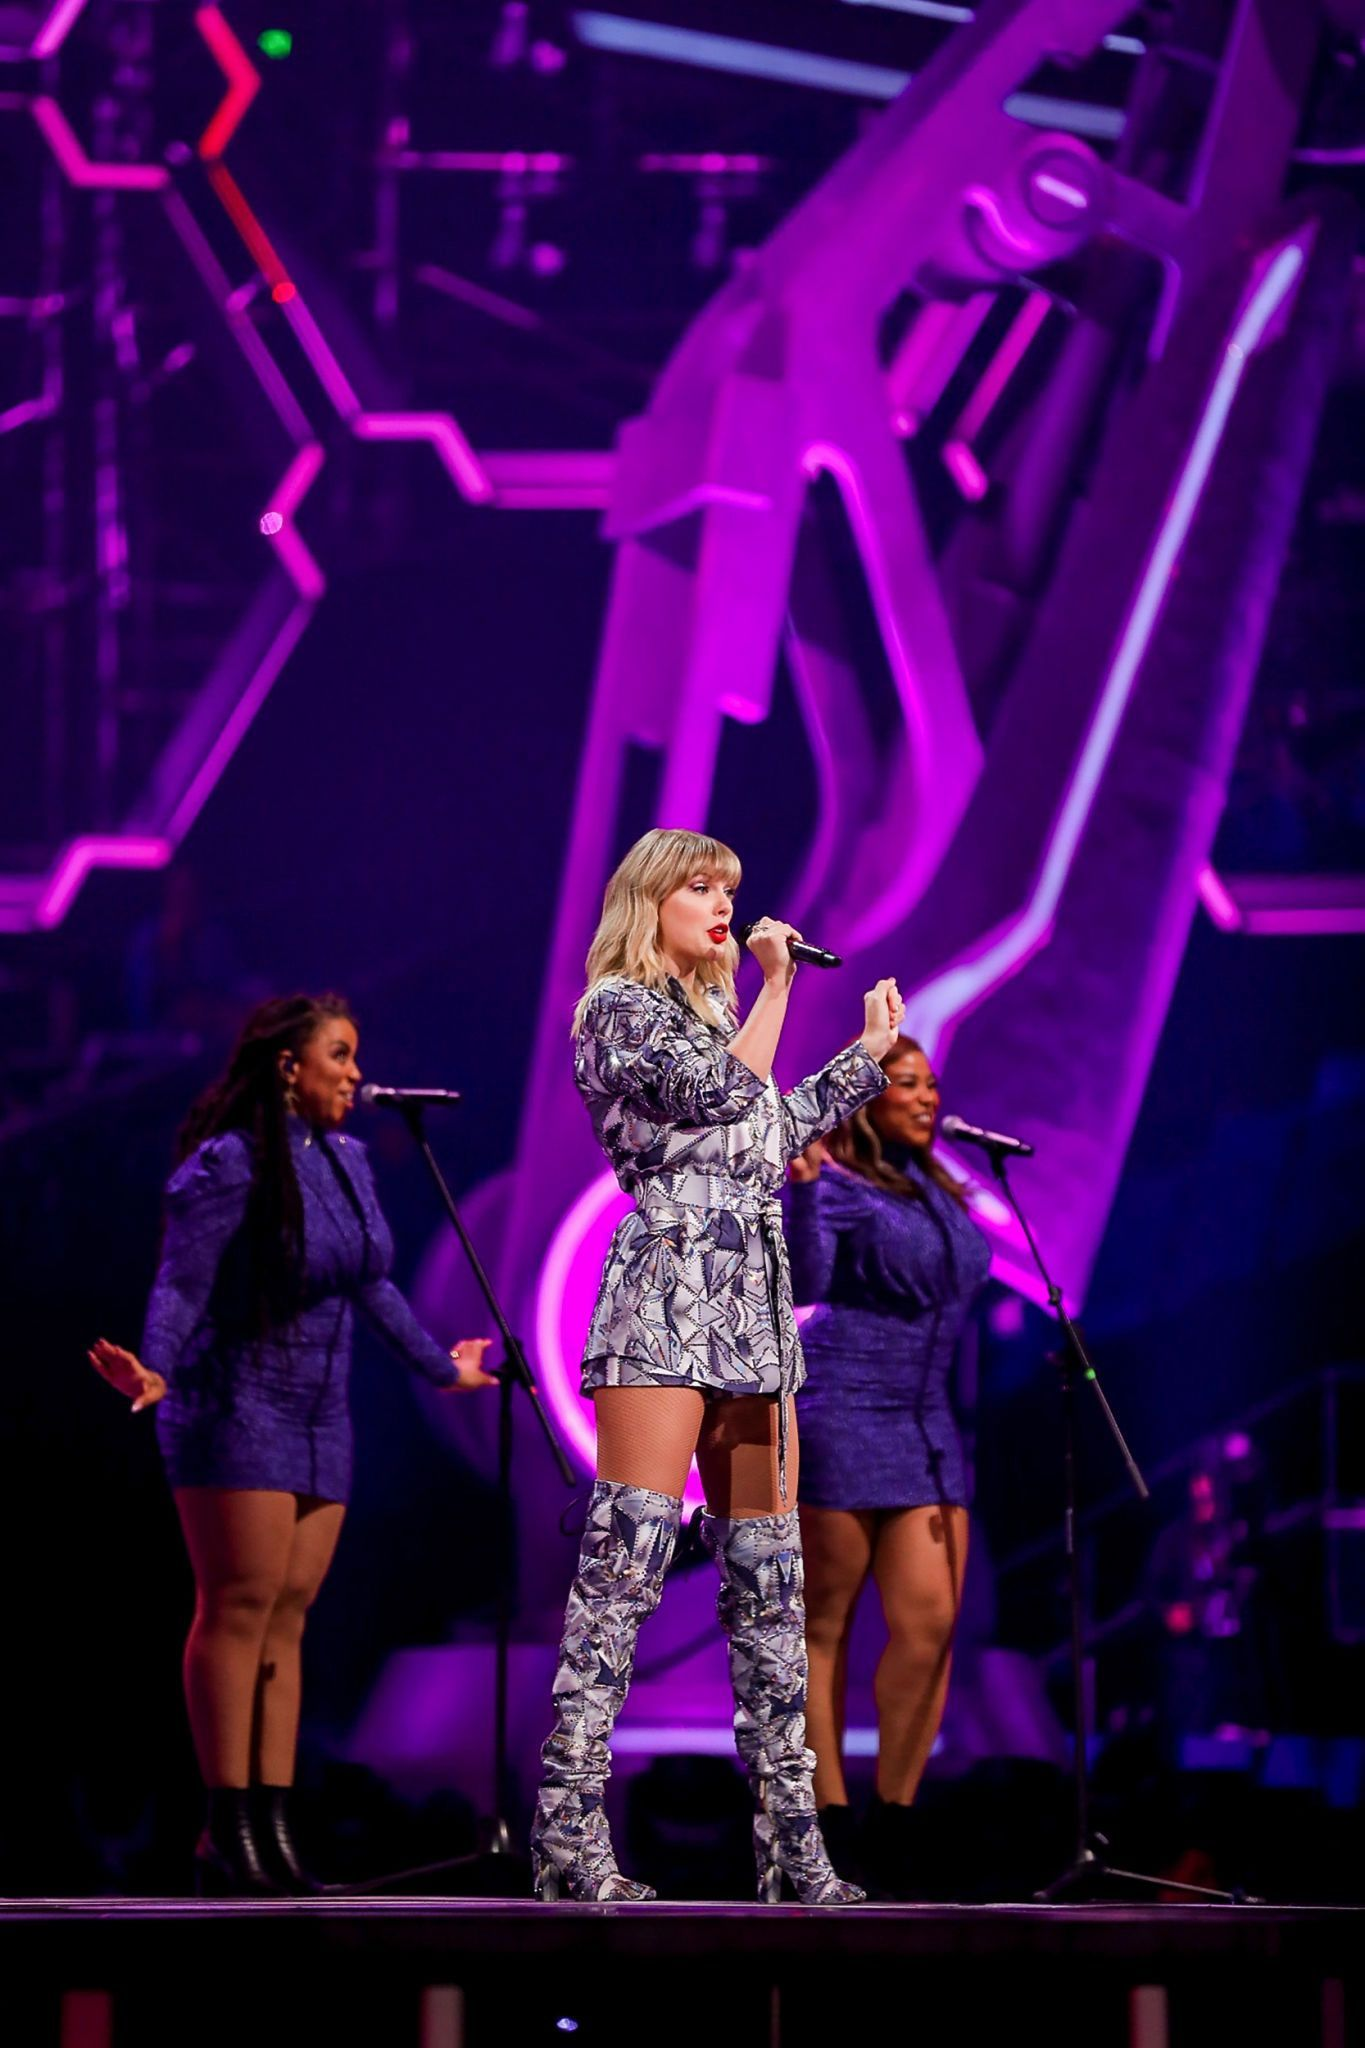 Taylor swift concert, Taylor swift music, Taylor swift outfits